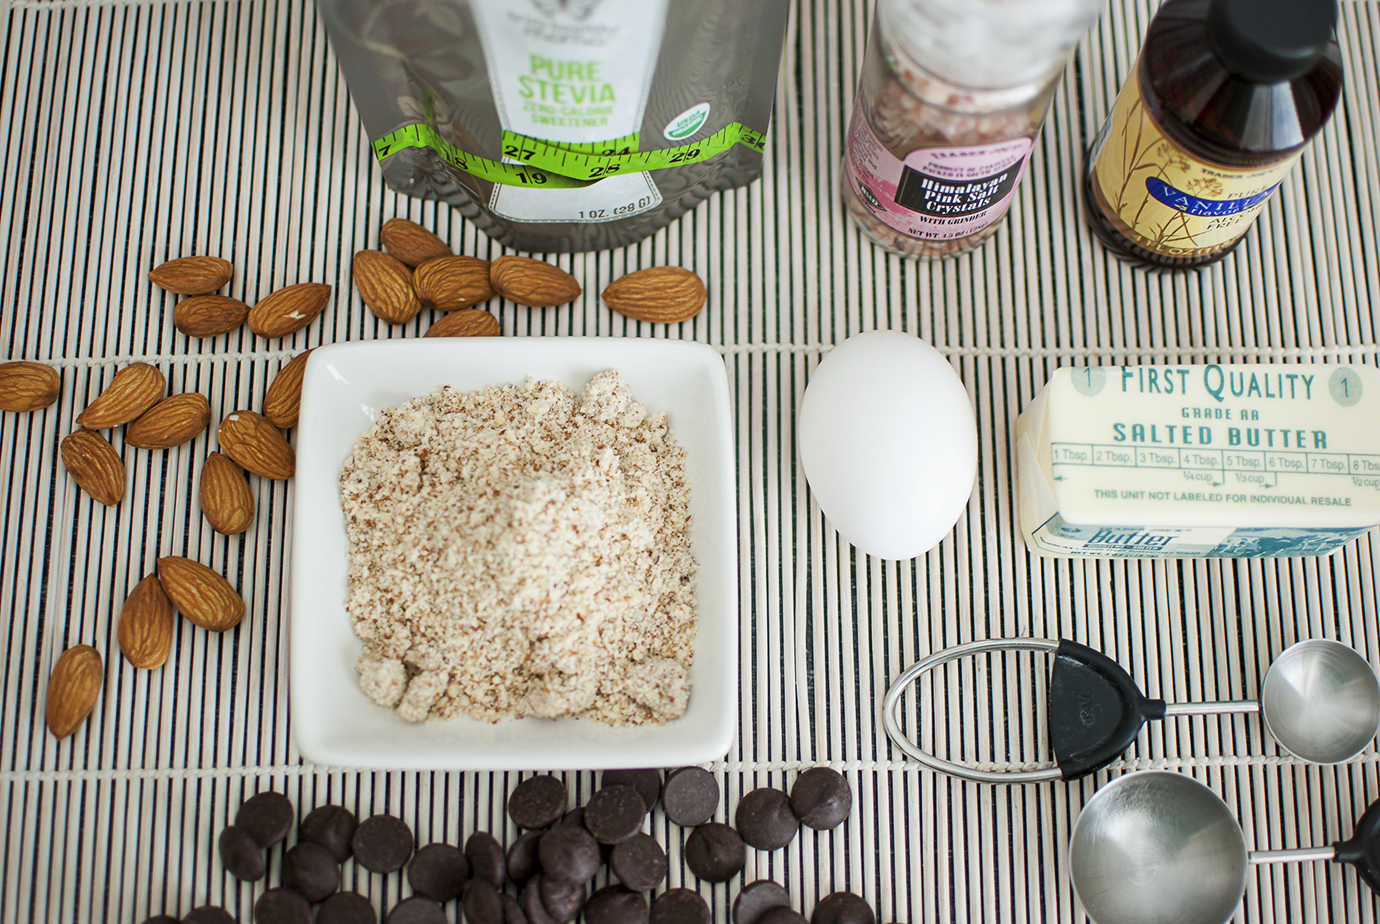 Ingredients for the Low Carb Chocolate Chip Mug Cookie Recipe